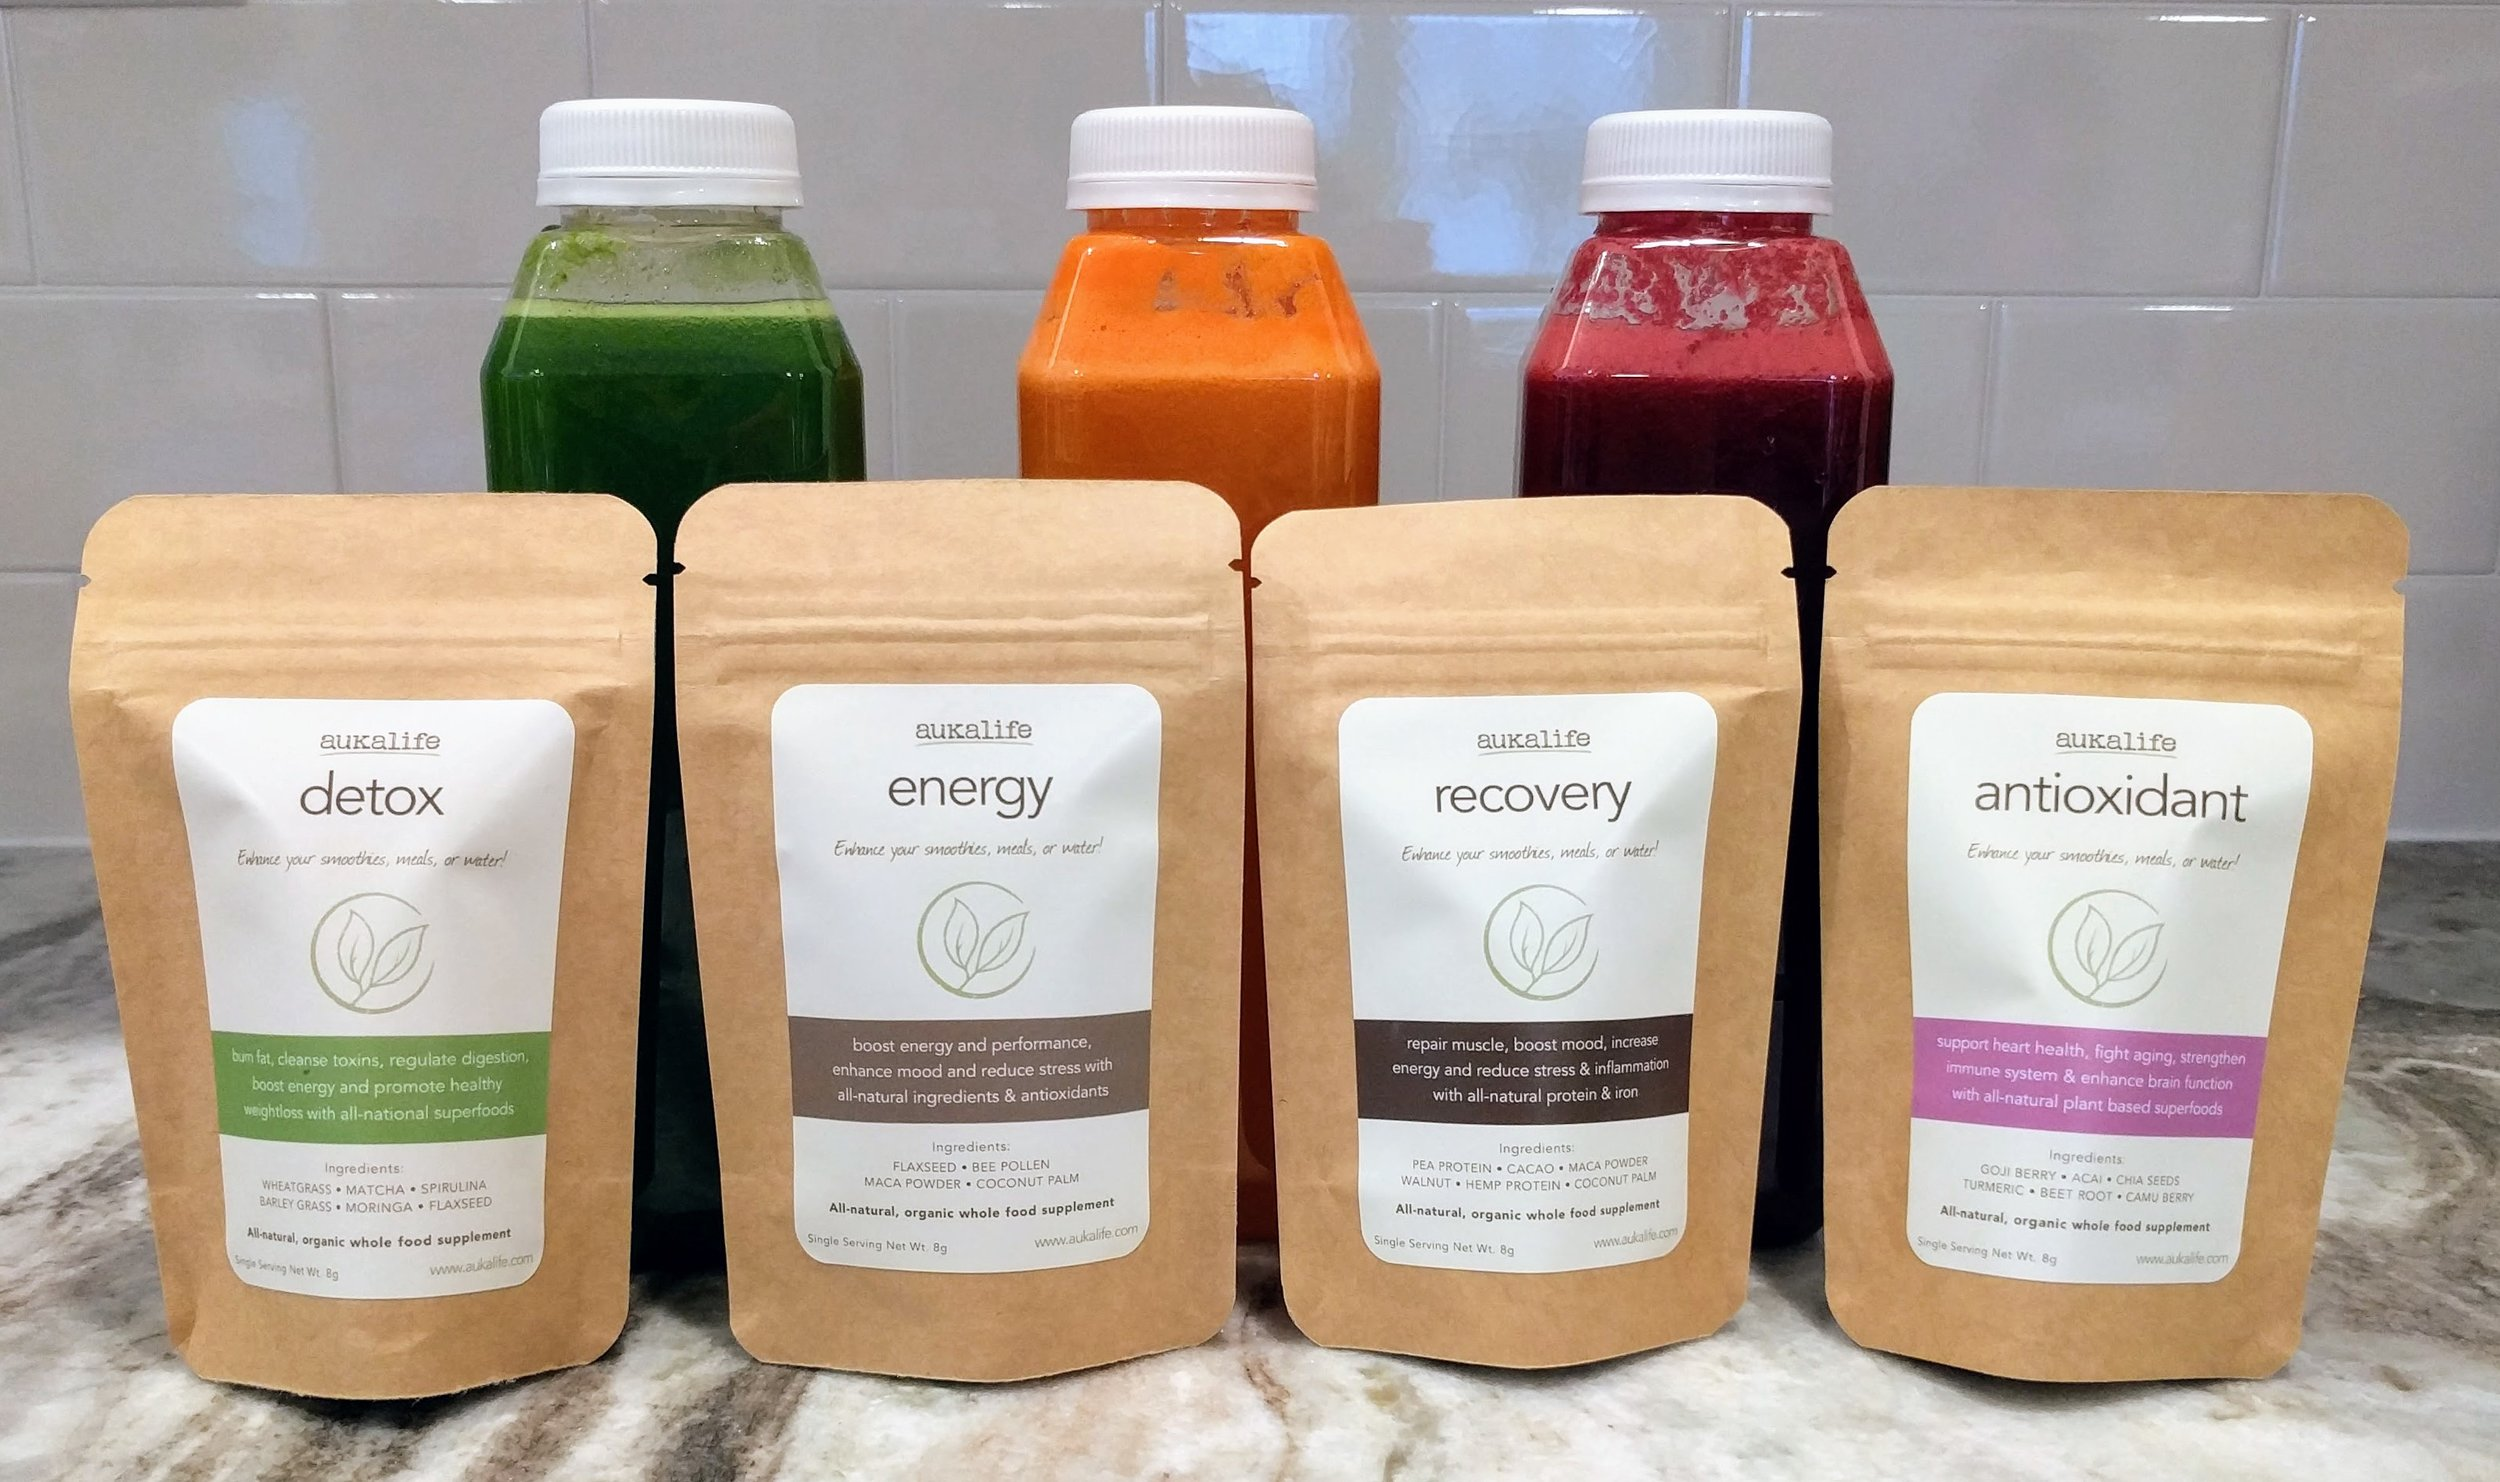 These are her beautiful products – I've tried them all. Detox is my fave!  Order here and support her campaign!